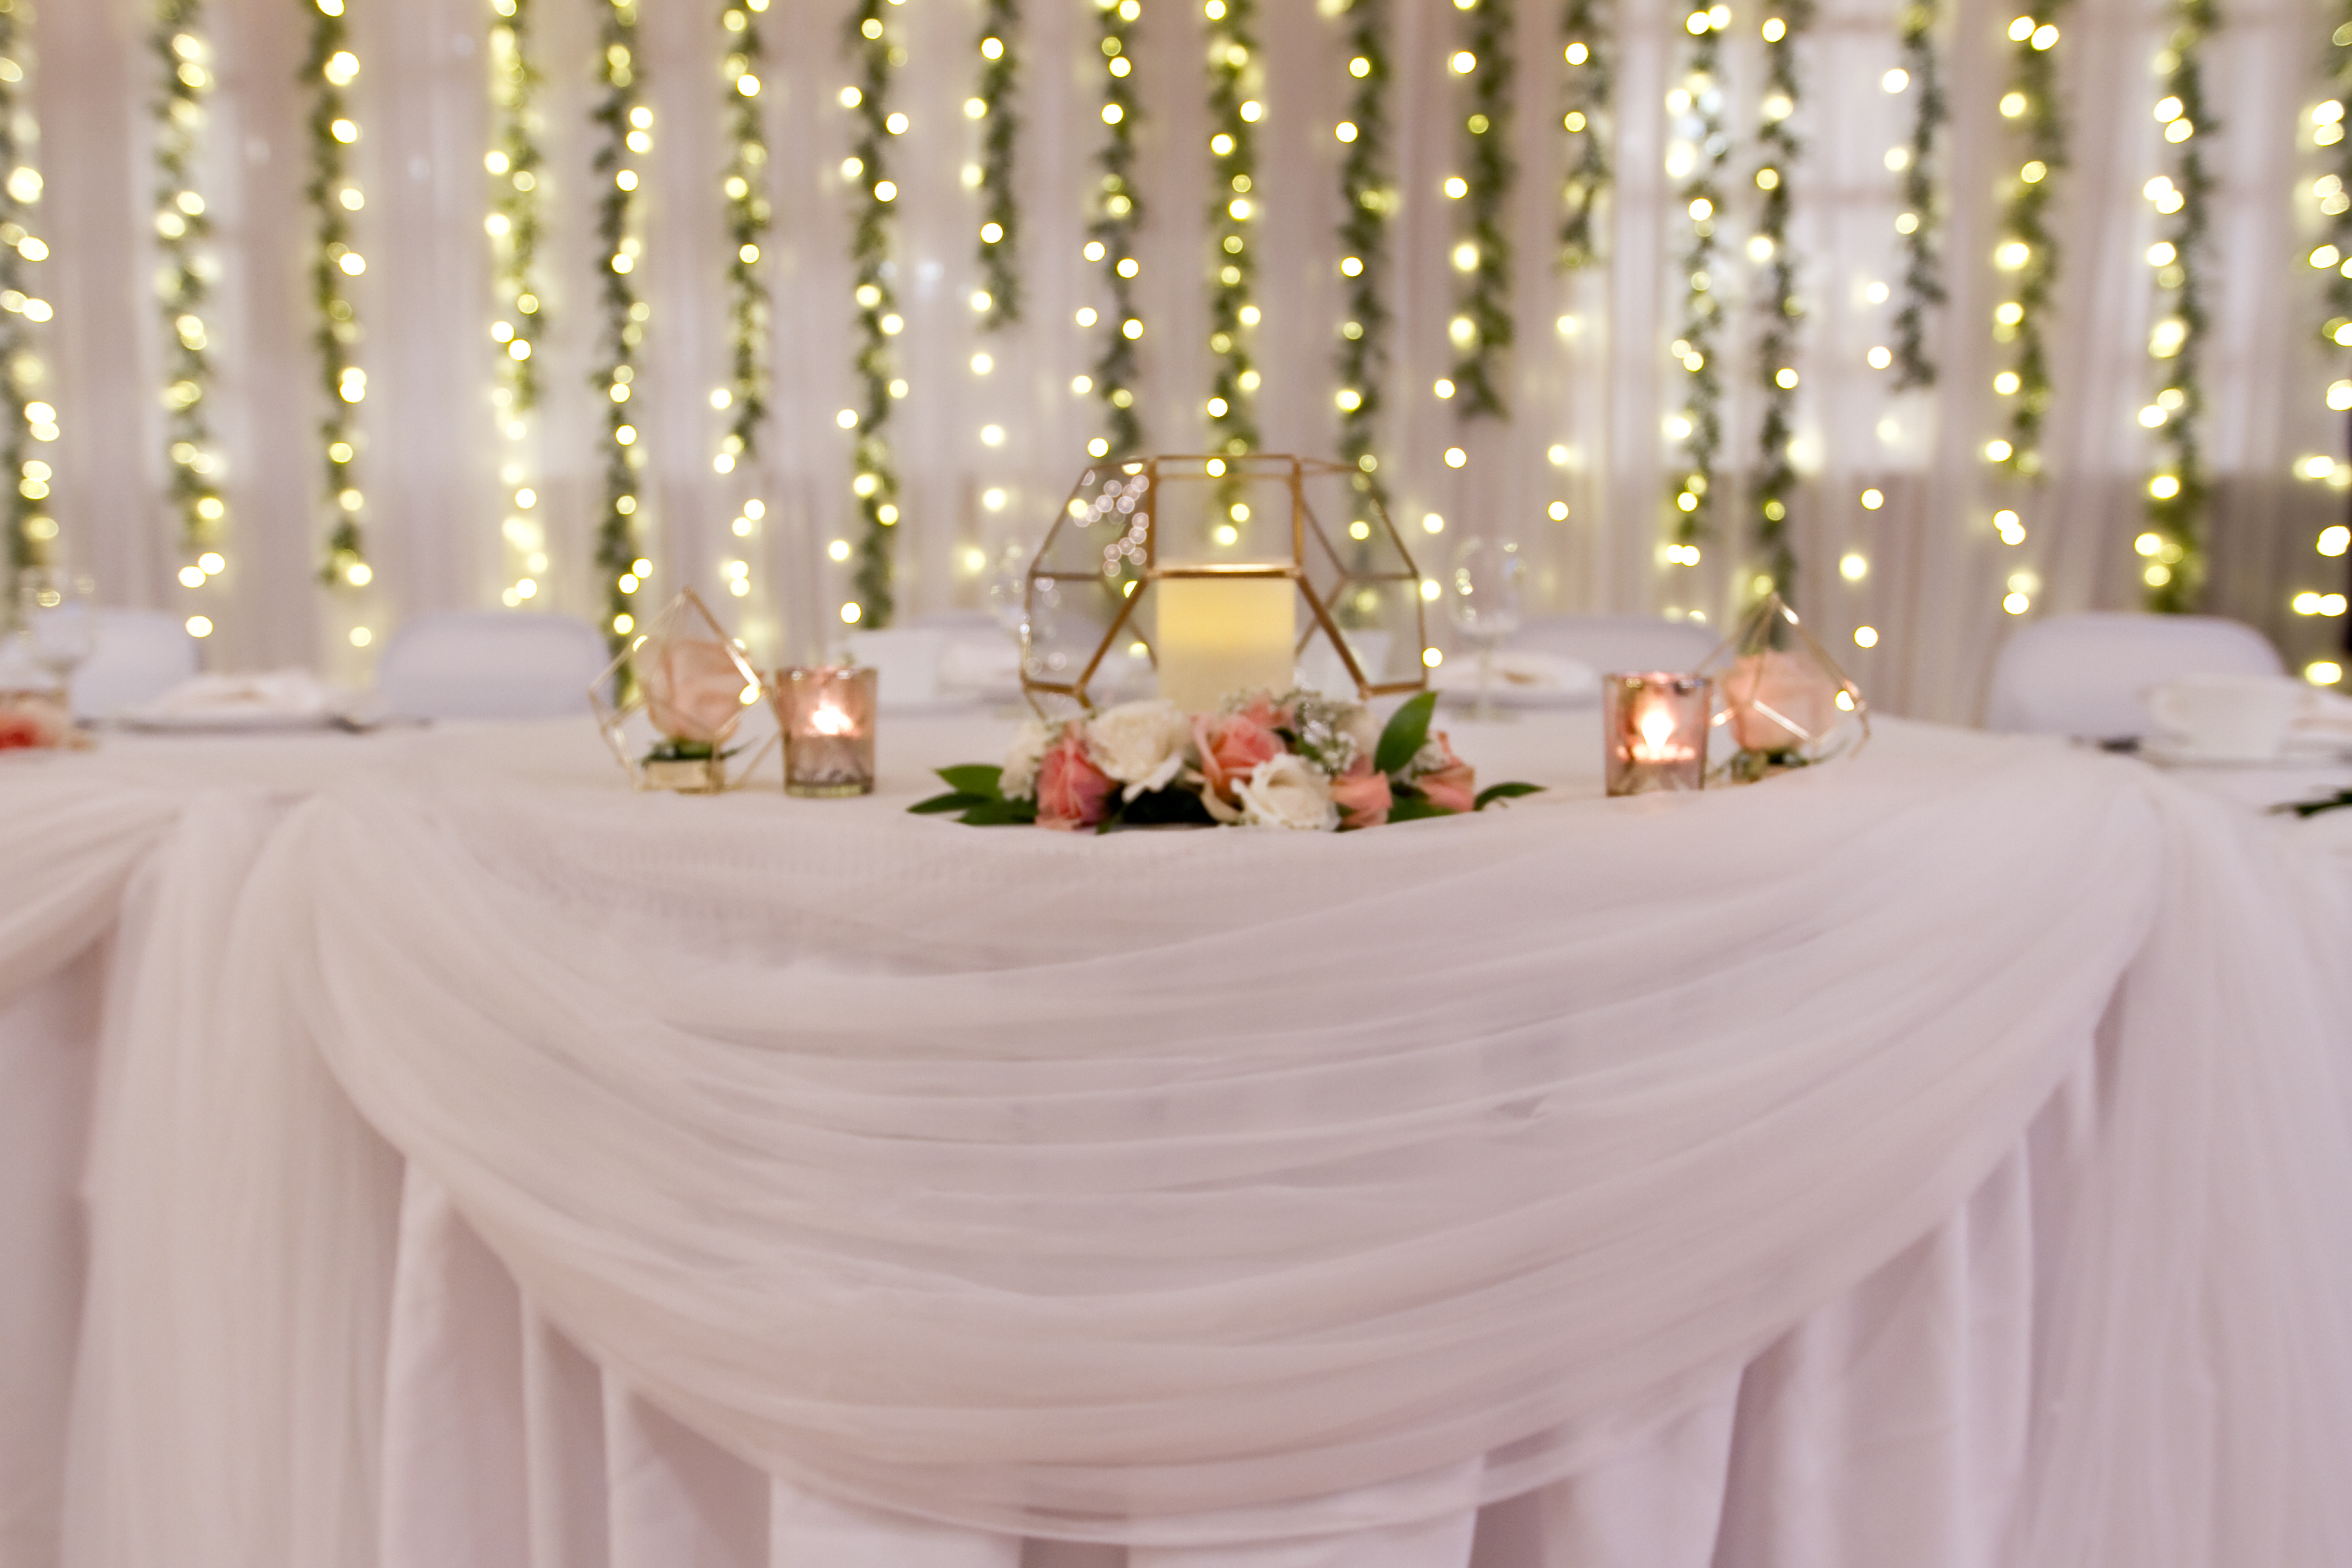 Sweetheart Table_Lighted Backdrop with cascading boxwood garland